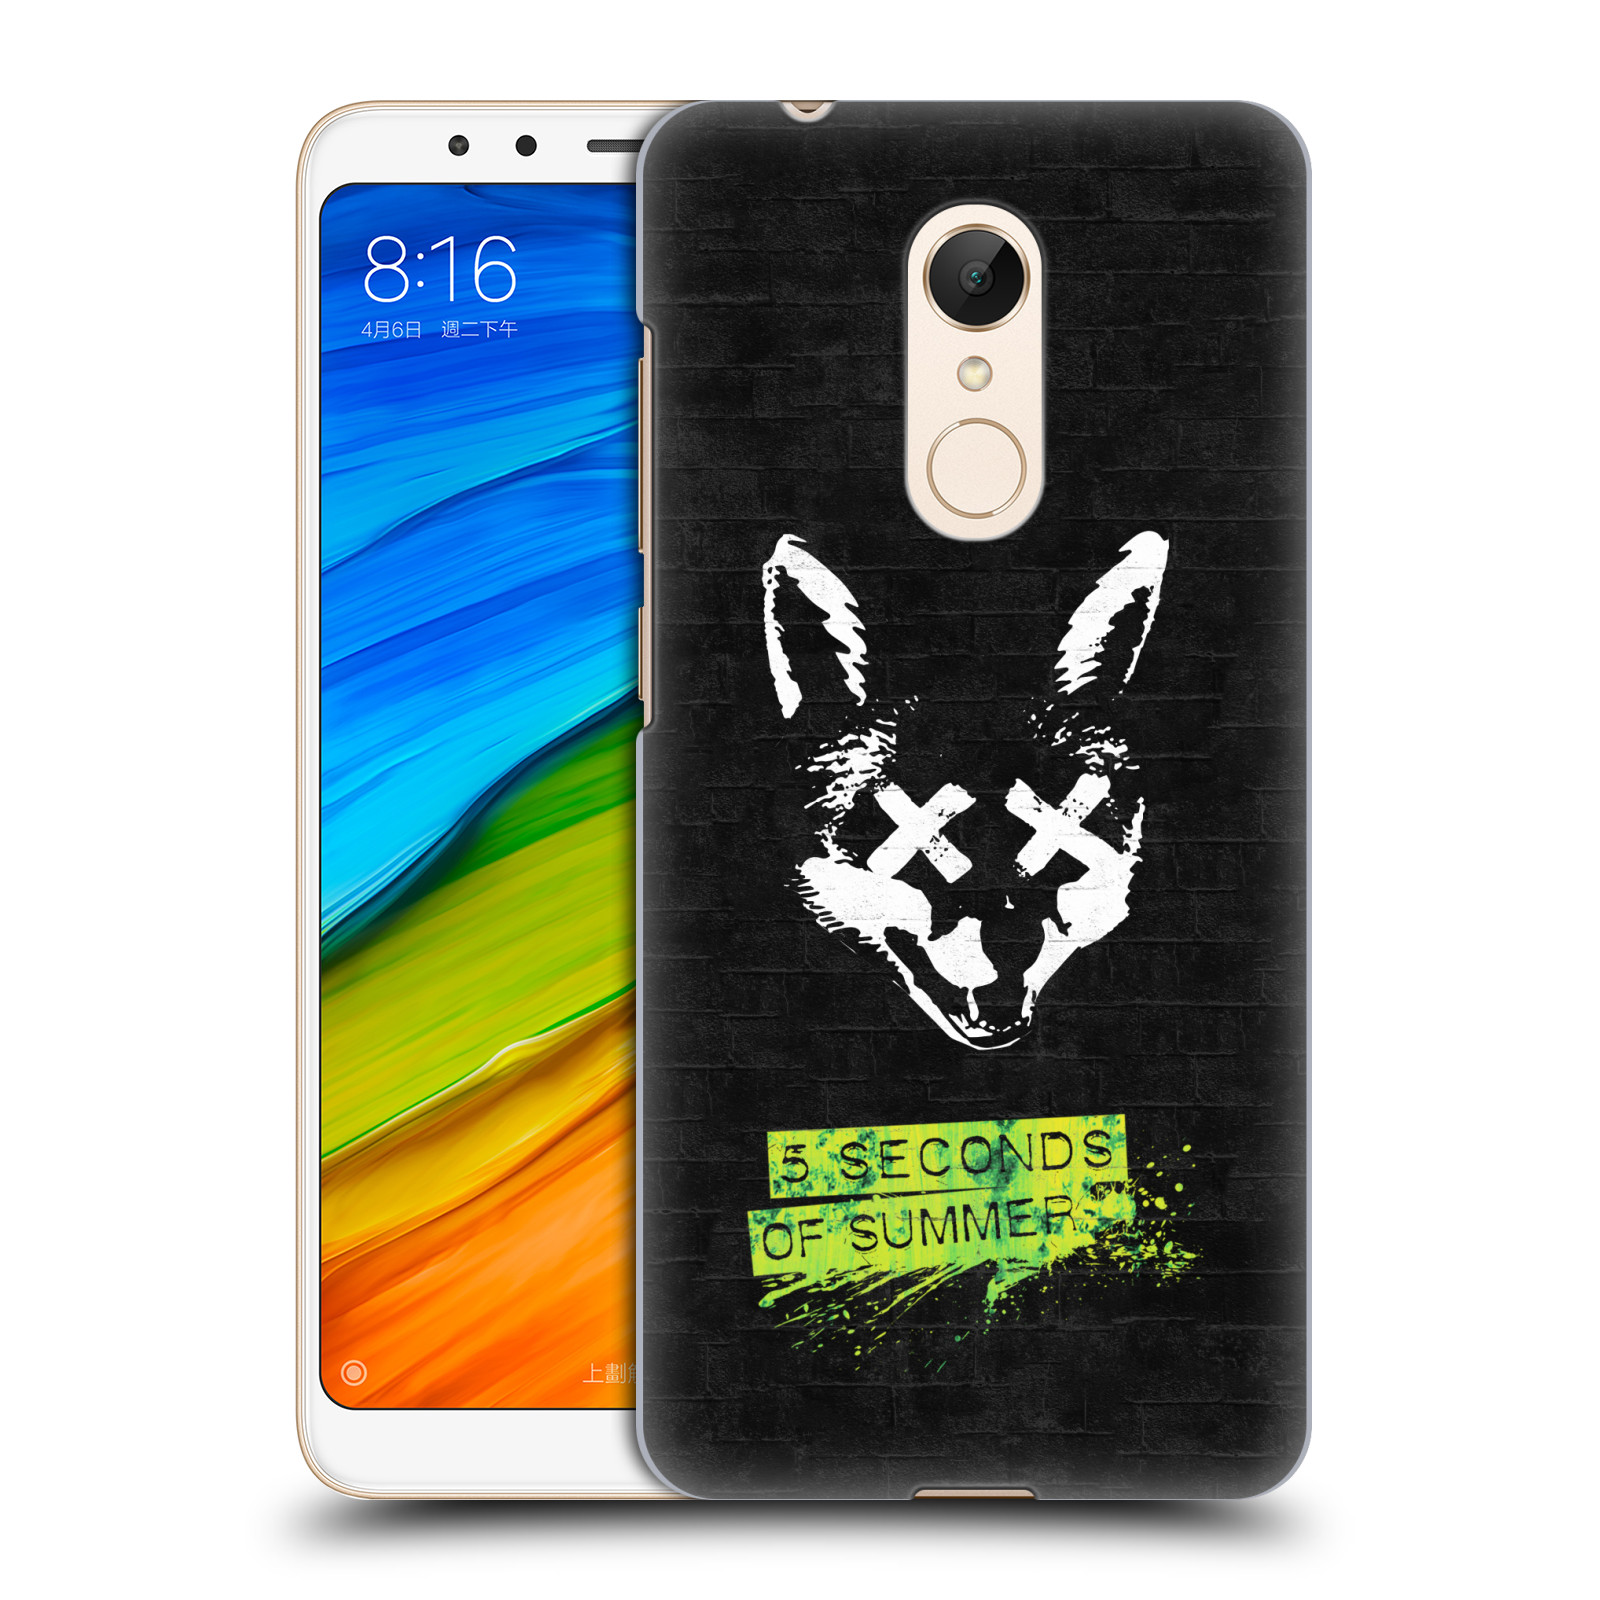 Plastové pouzdro na mobil Xiaomi Redmi 5 - Head Case - 5 Seconds of Summer - Fox